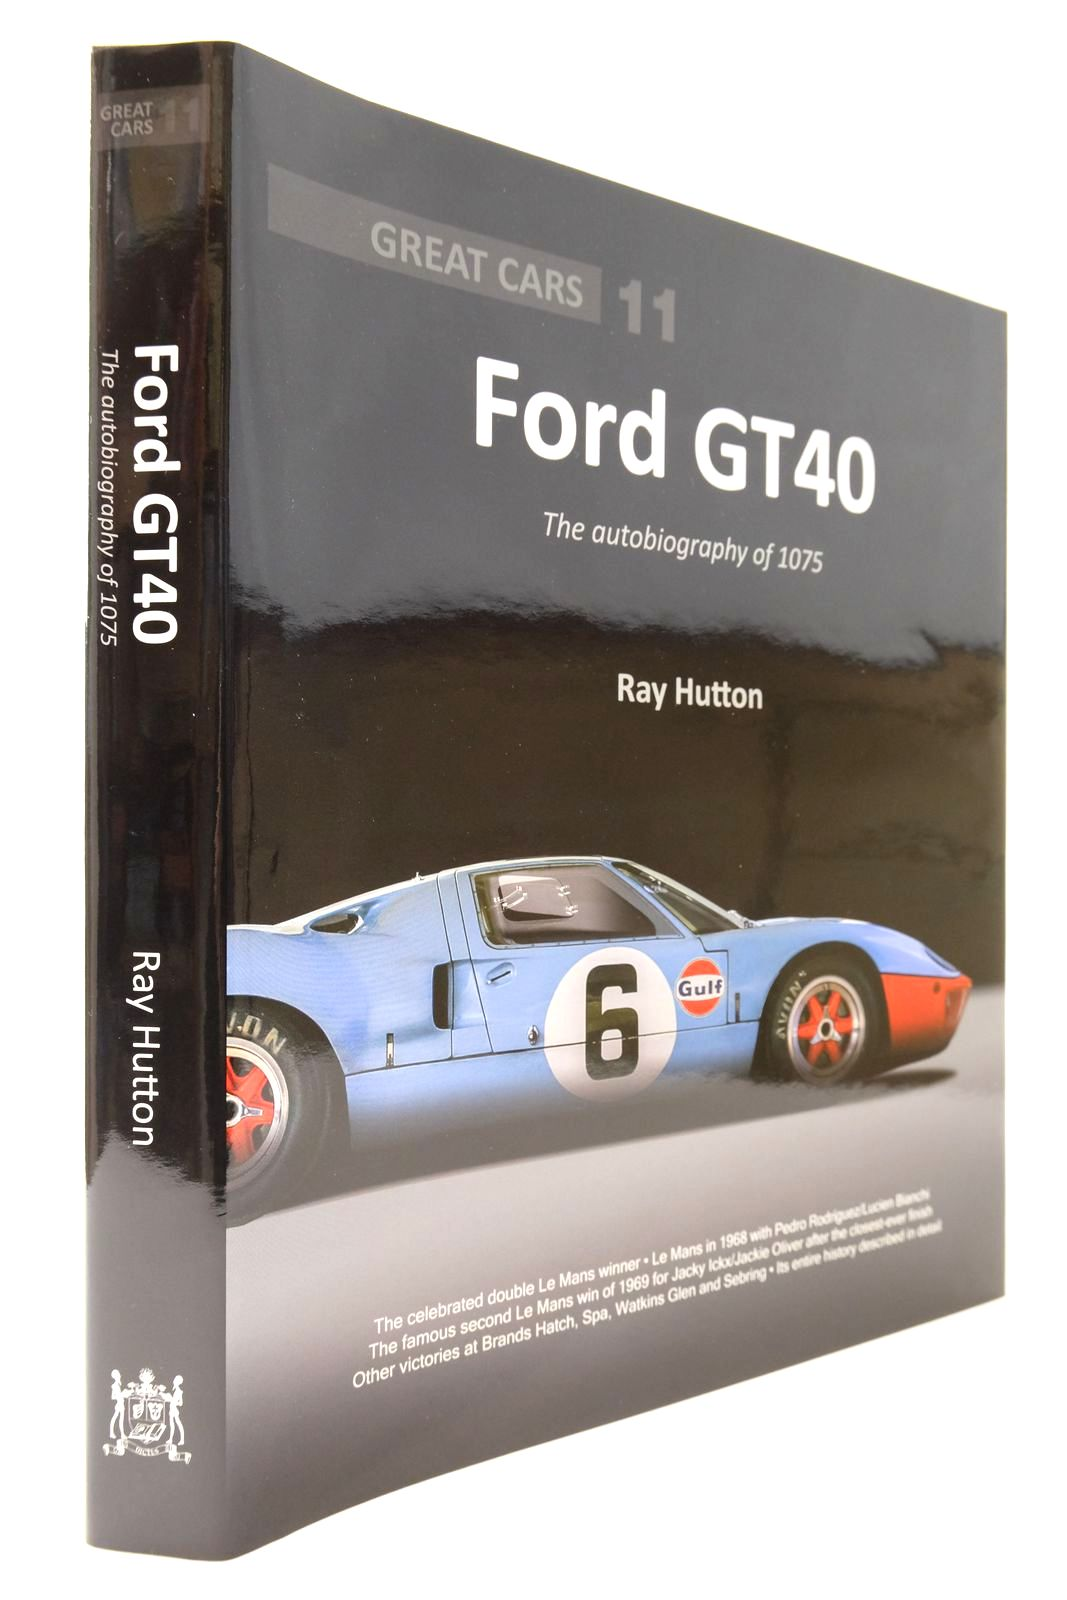 Photo of GREAT CARS FORD GT40 THE AUTOBIOGRAPHY OF 1075 written by Hutton, Ray published by Porter Press International Ltd (STOCK CODE: 2132935)  for sale by Stella & Rose's Books